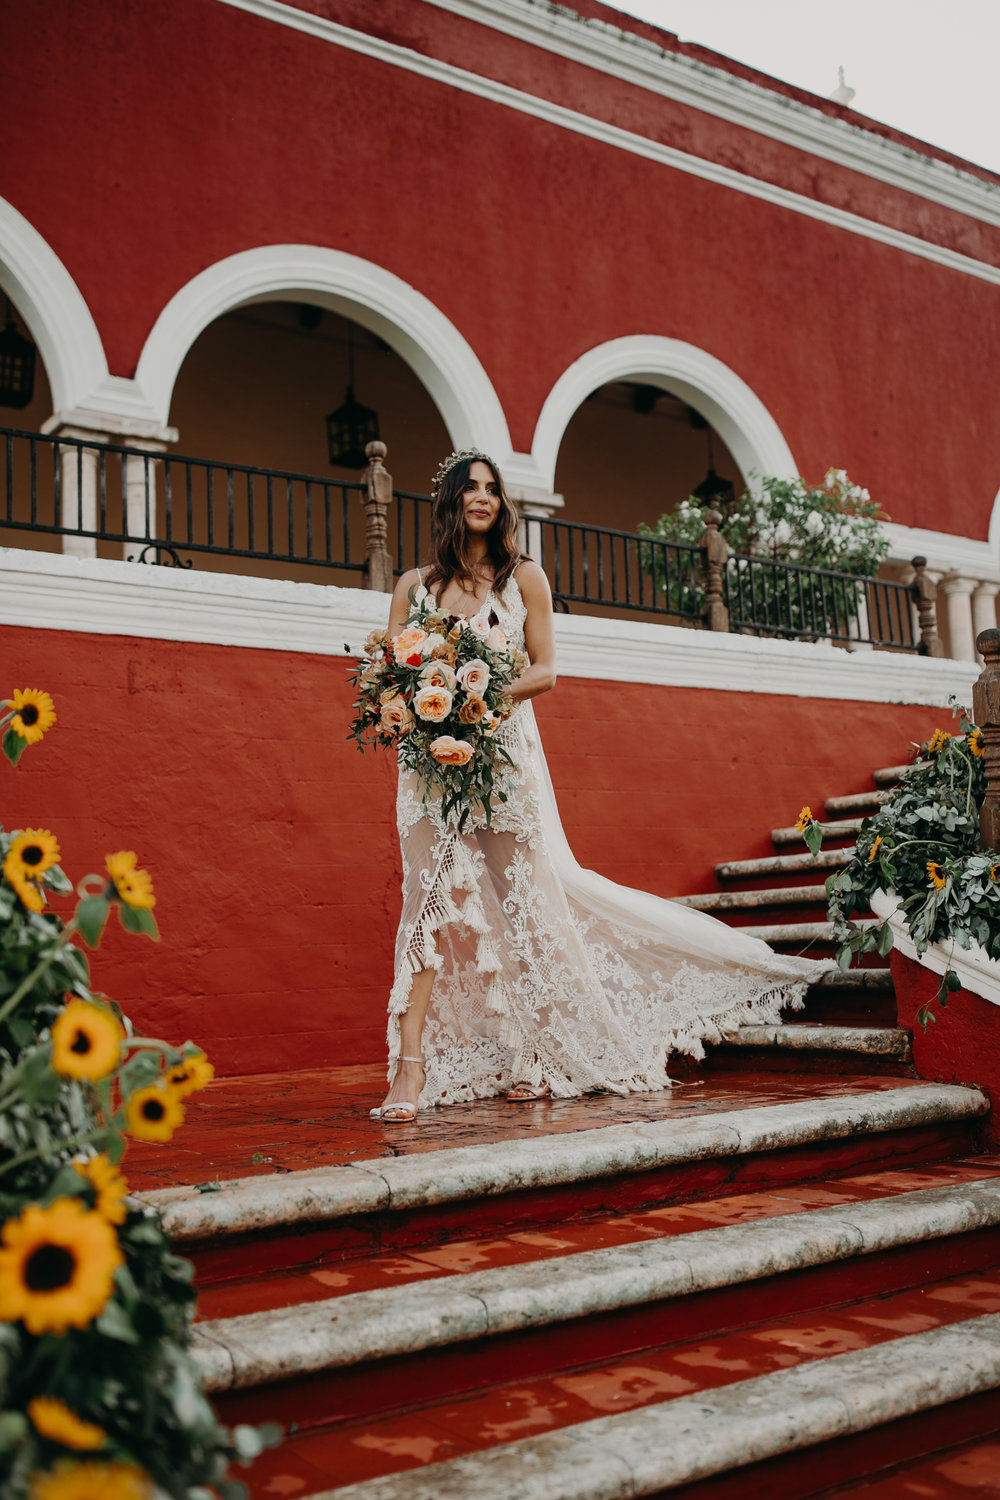 Hacienda Temozon Yucatan Mexico Wedding | Ida & Peter Emily Magers Photography-965.jpg